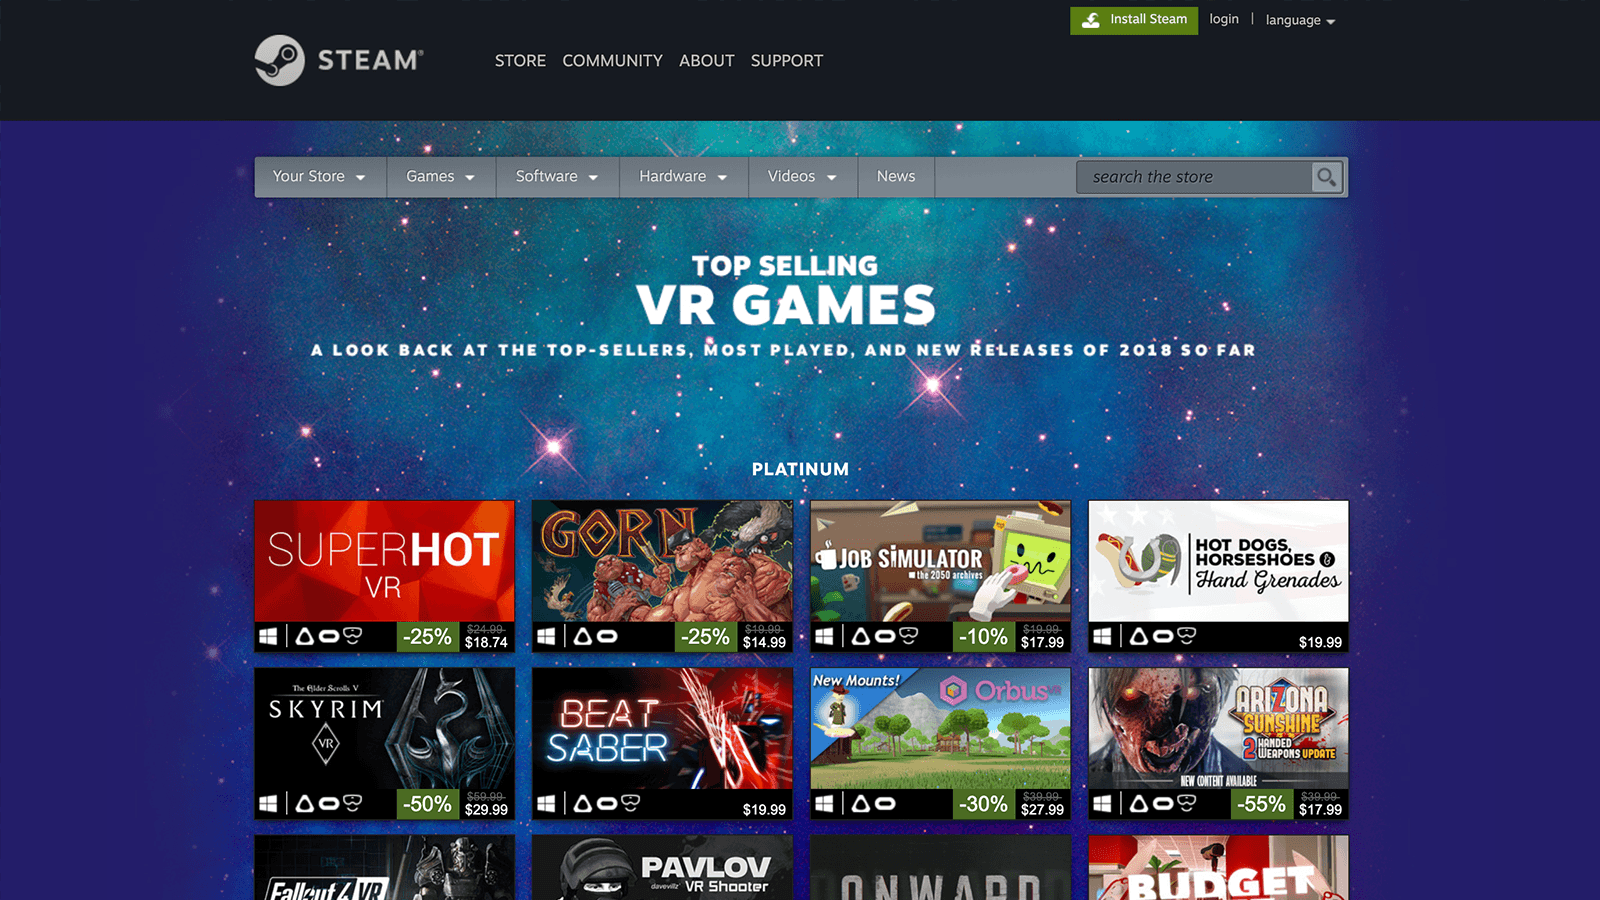 Steam Releases Their Best Selling VR Games of 2018 Vr